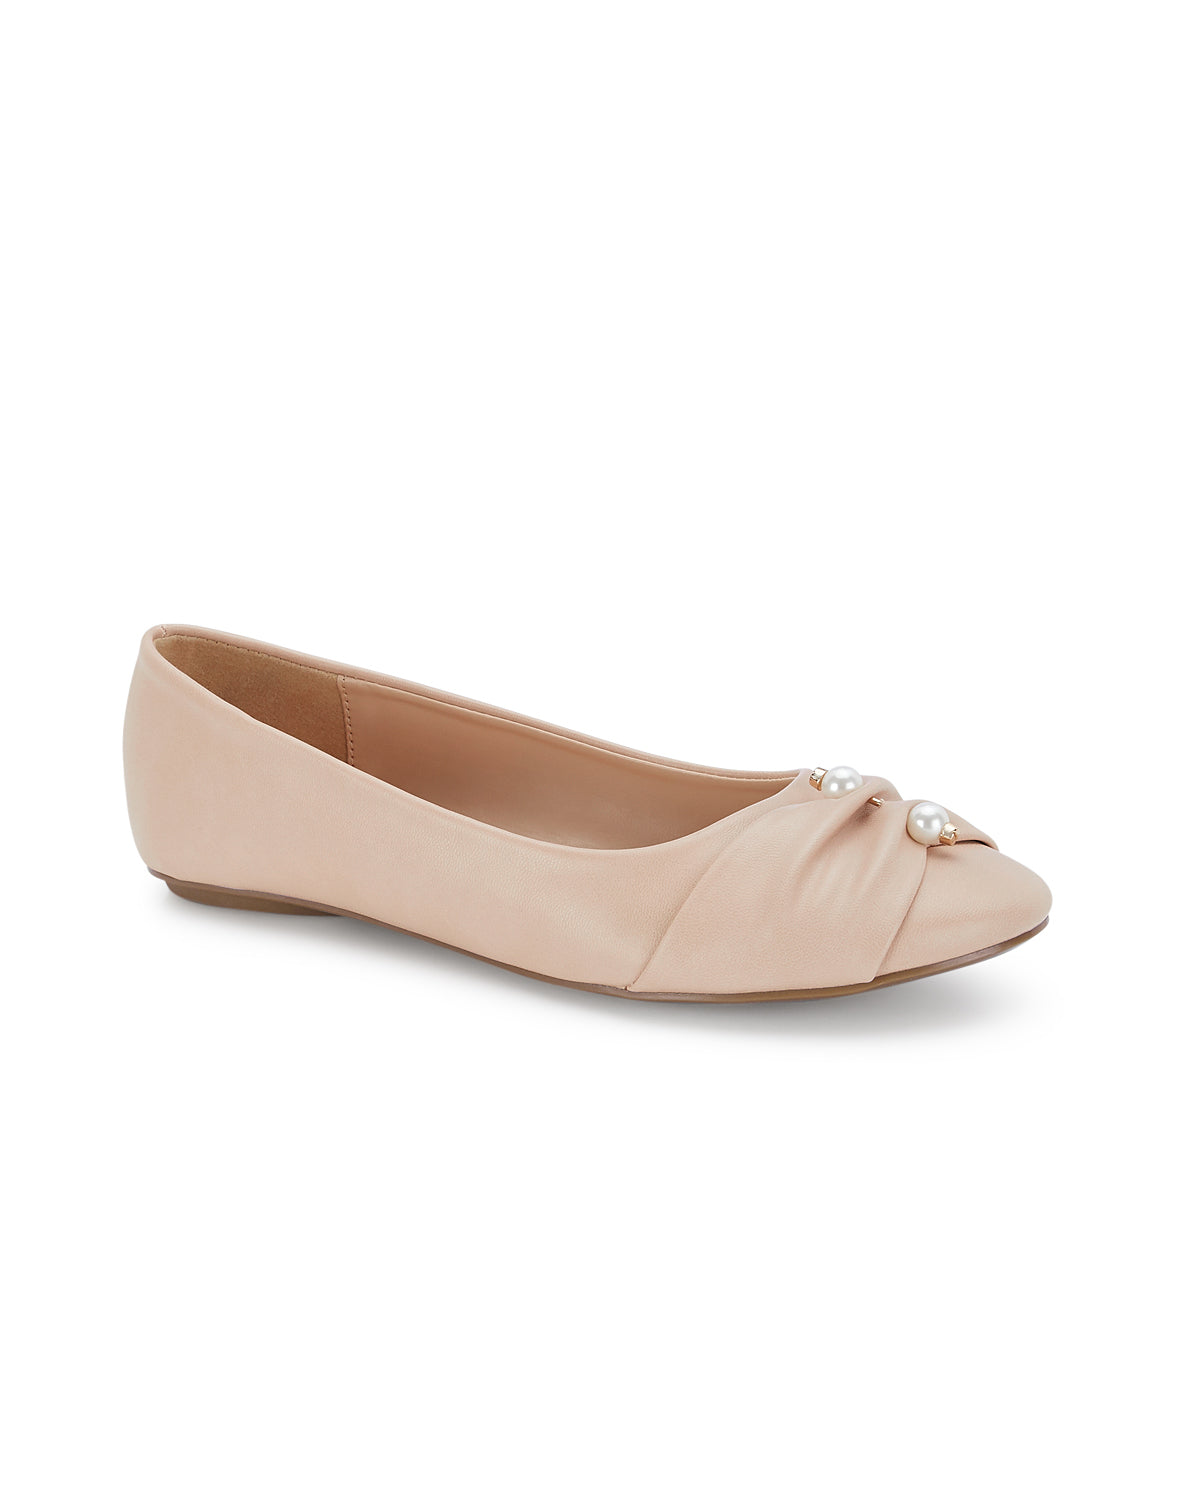 Olympe Pink Ballet Flats